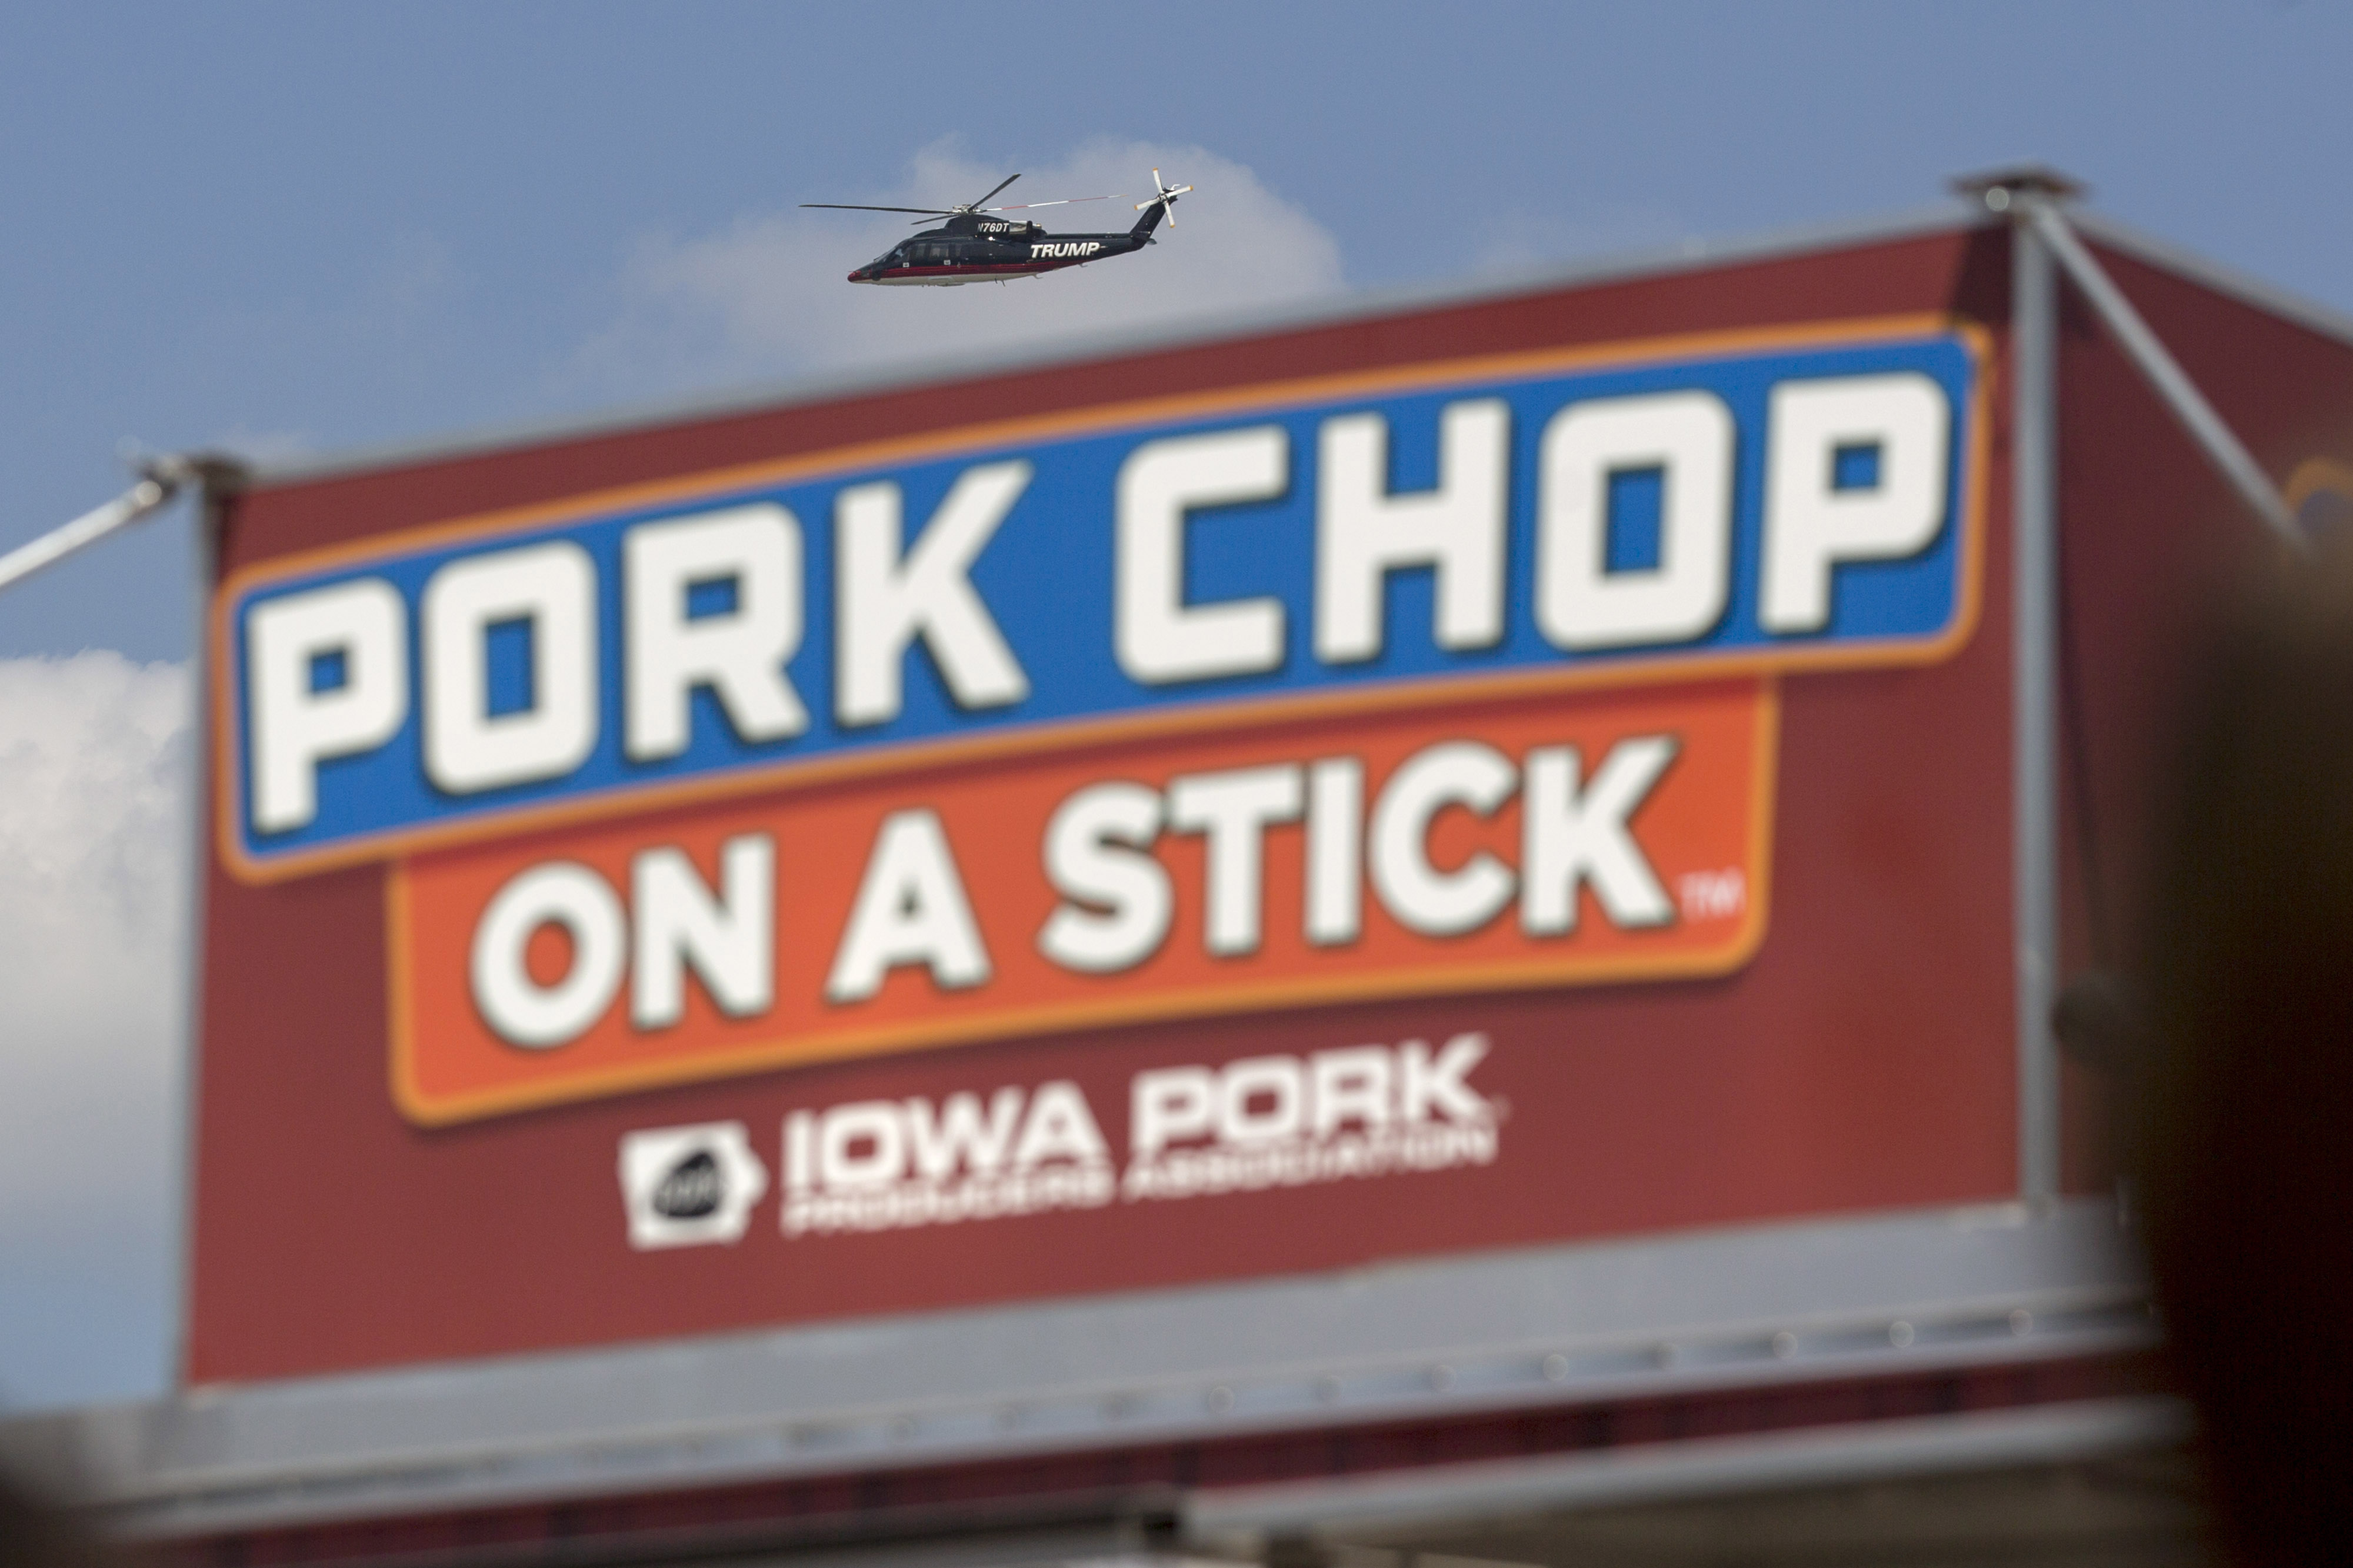 The helicopter of Donald Trump flies over a pork chop on a stick stand at the Iowa State Fair in Des Moines, Iowa, on Aug. 15, 2015. MUST CREDIT: Bloomberg photo by Andrew Harrer.